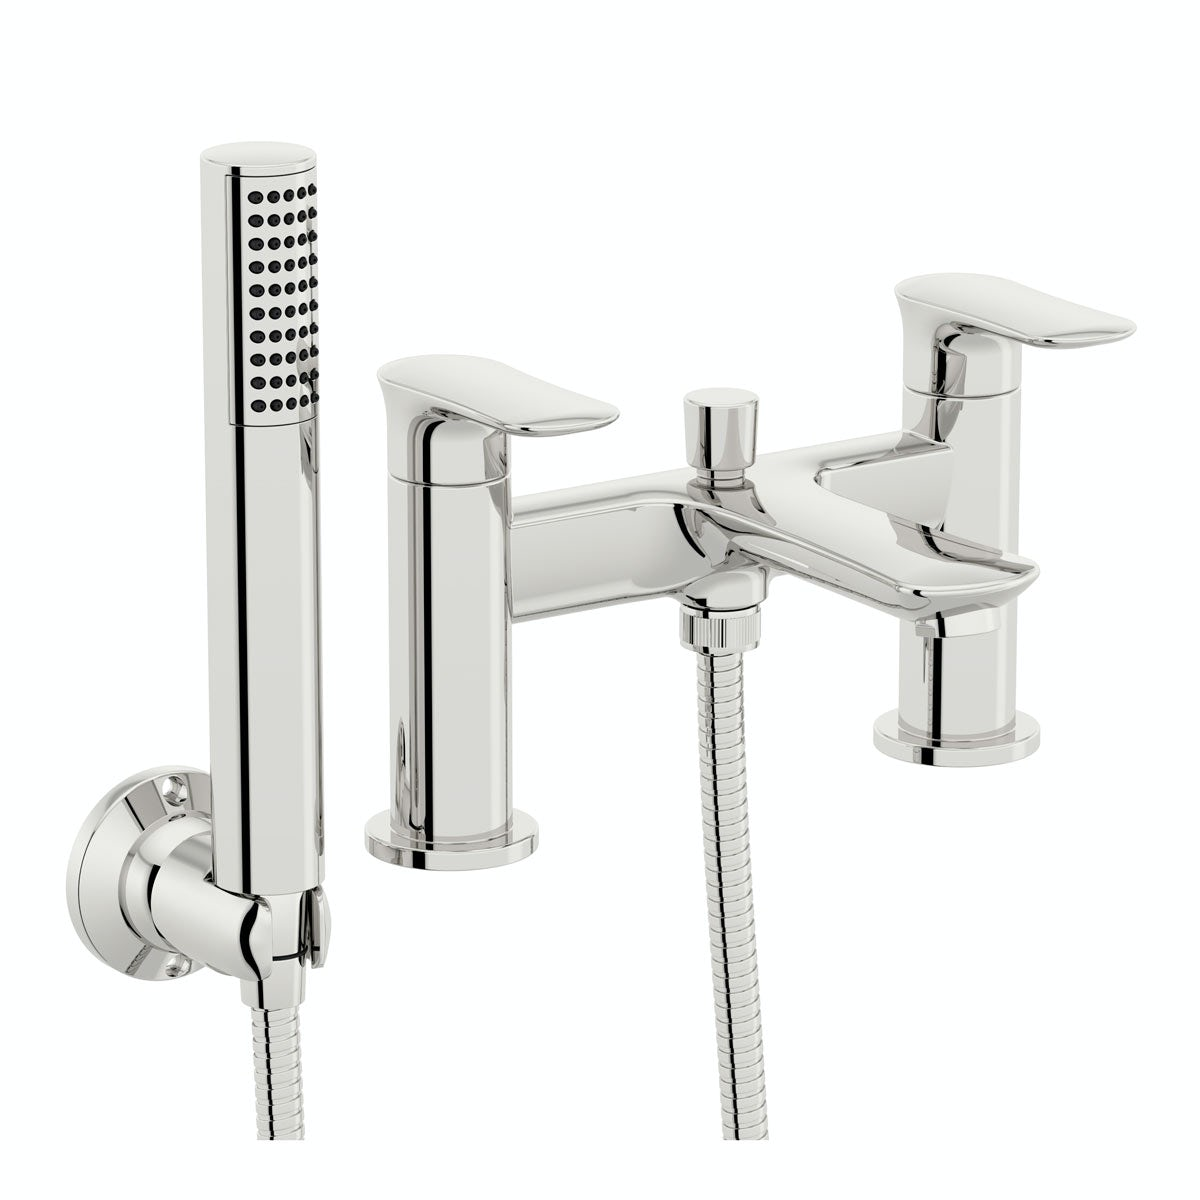 Orchard Cleanse bath shower mixer tap offer pack